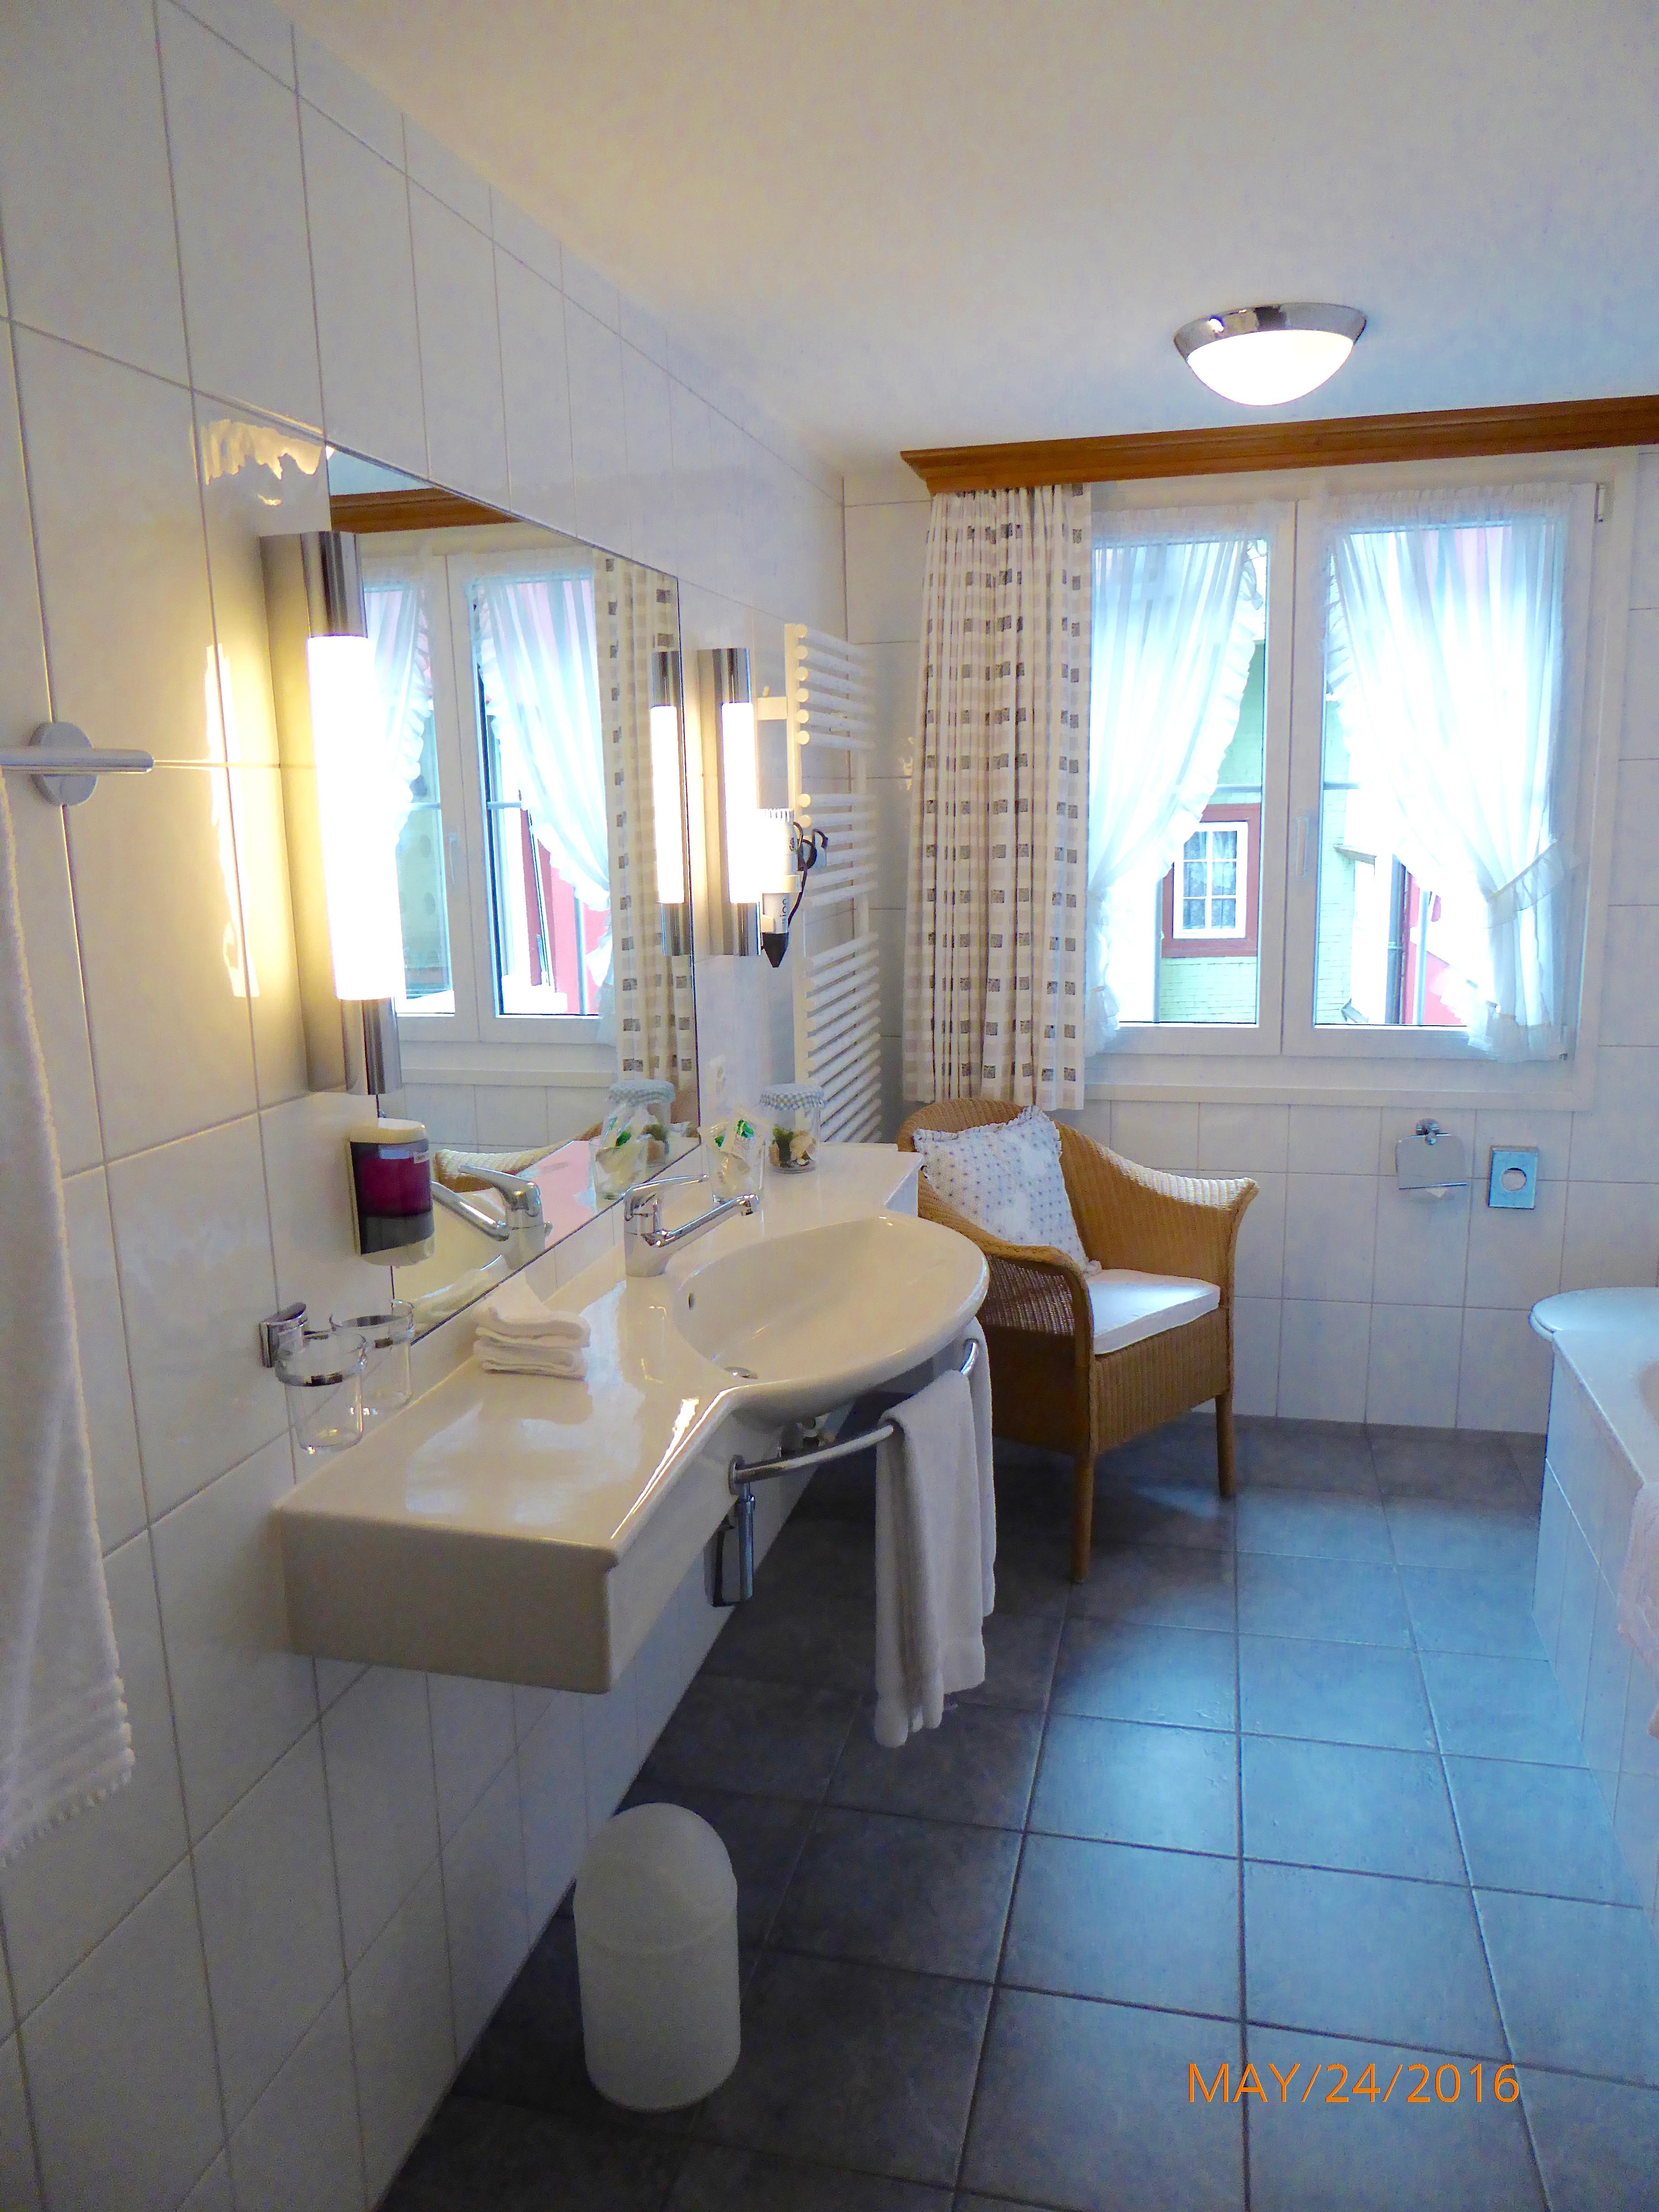 Sink area. Bathtub across from sink, shower in one corner, toilet in corner by window